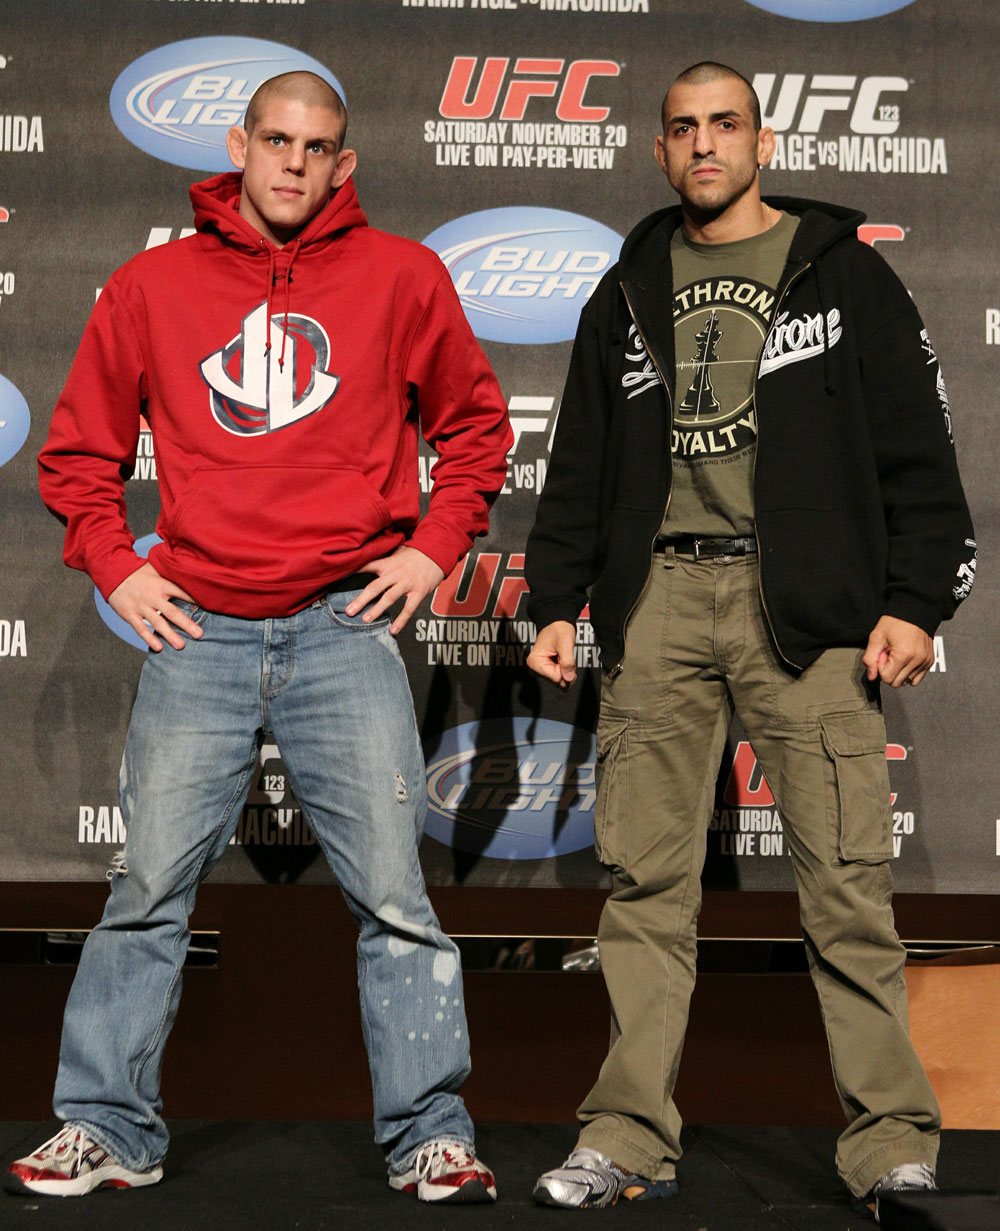 (L-R) Joe Lauzon and George Sotiropoulos pose for photos at the UFC 123 pre-fight press conference at the MGM Grand Hotel and Casino in Detroit, Michigan on November 17, 2010  (Photo by Josh Hedges/Zuffa LLC/Zuffa LLC via Getty Images)